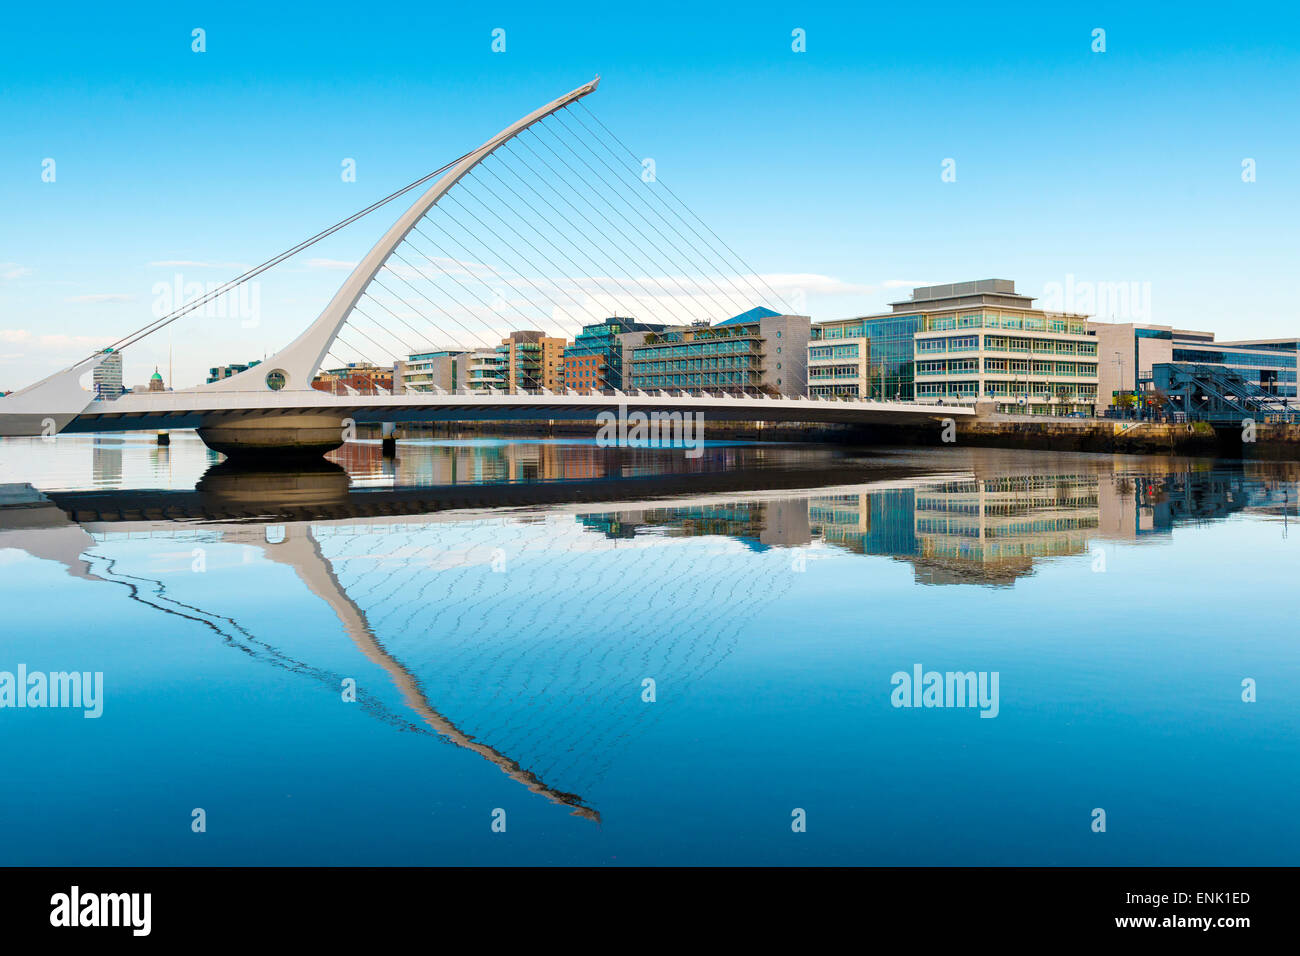 Samuel Beckett Bridge over the River Liffey, Dublin, County Dublin, Republic of Ireland, Europe - Stock Image